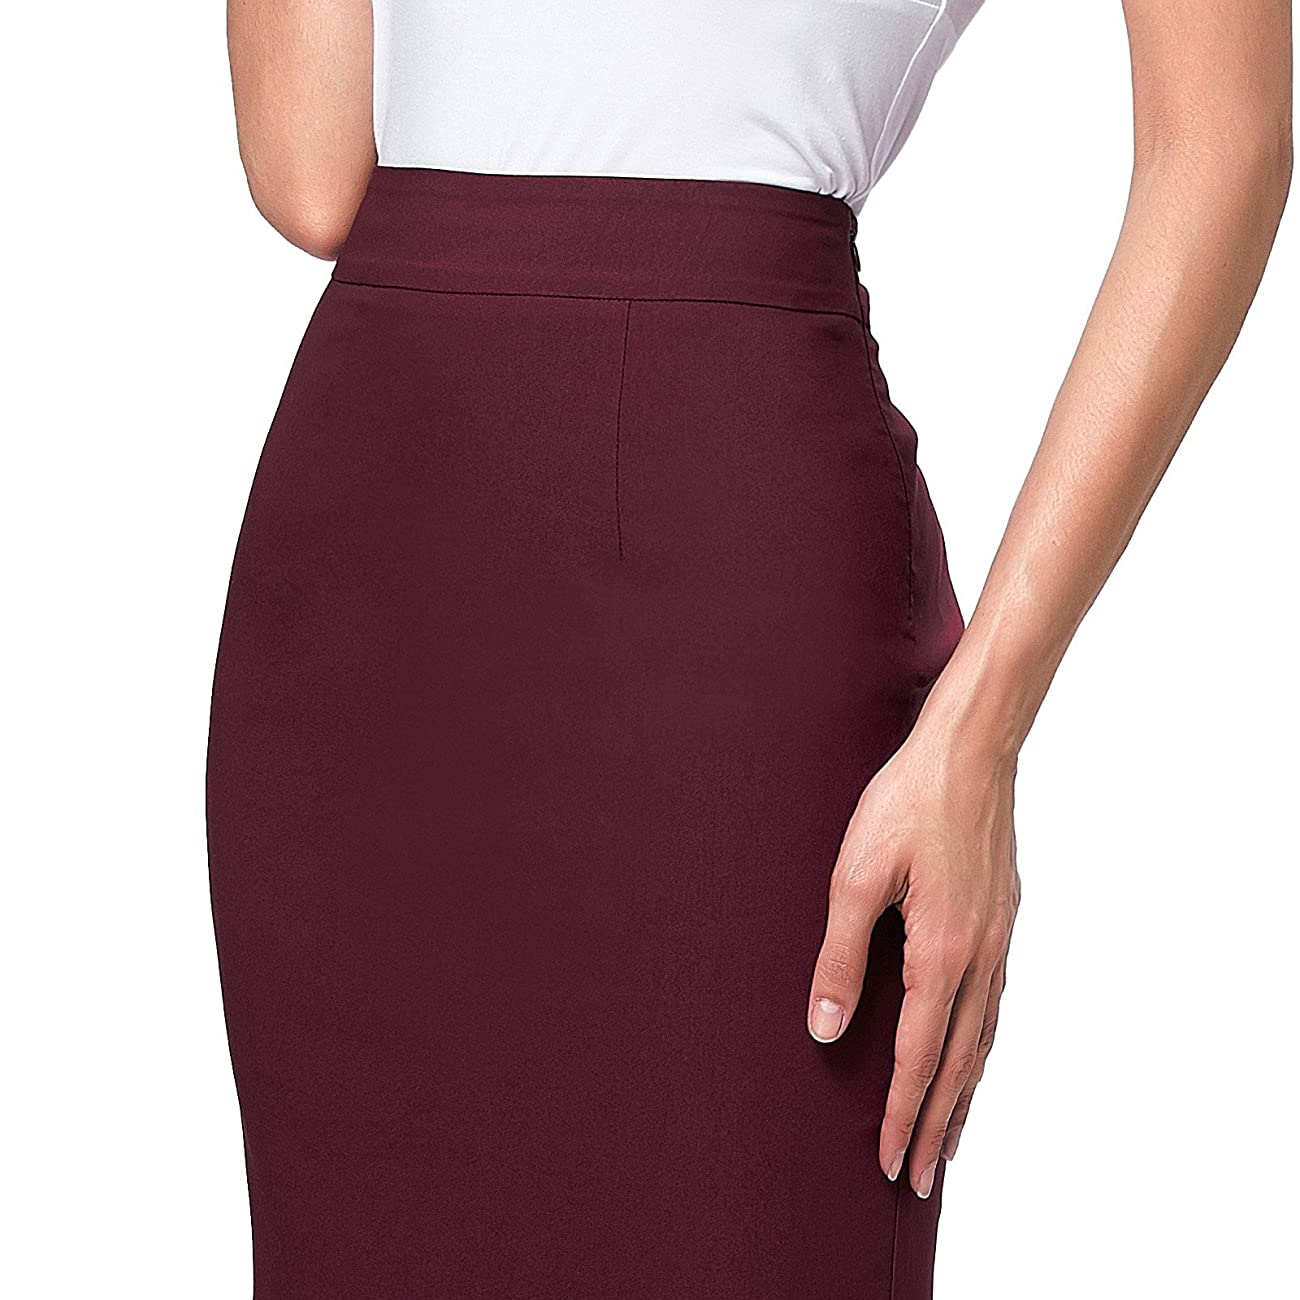 Kate Kasin Womens Wear to Work Stretchy Pencil Skirts 5